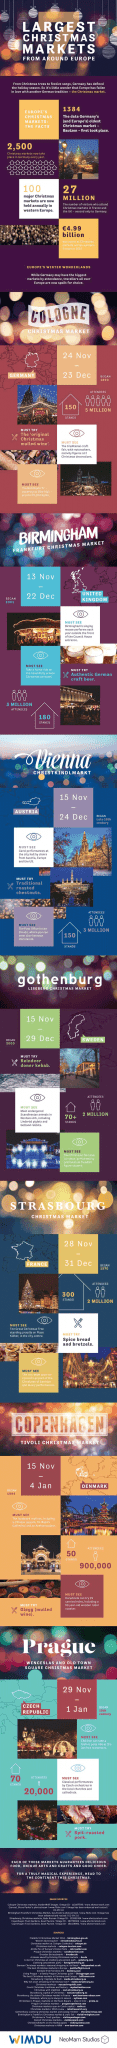 7 largest christmas markets around the world infographic